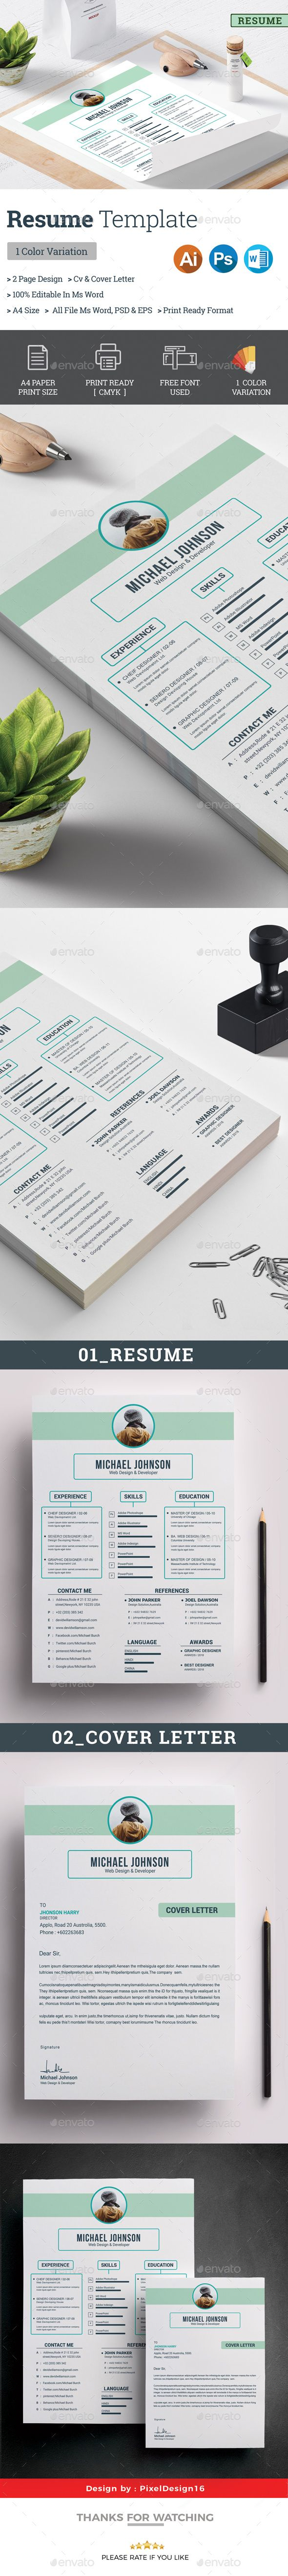 contoh format resume%0A Resume